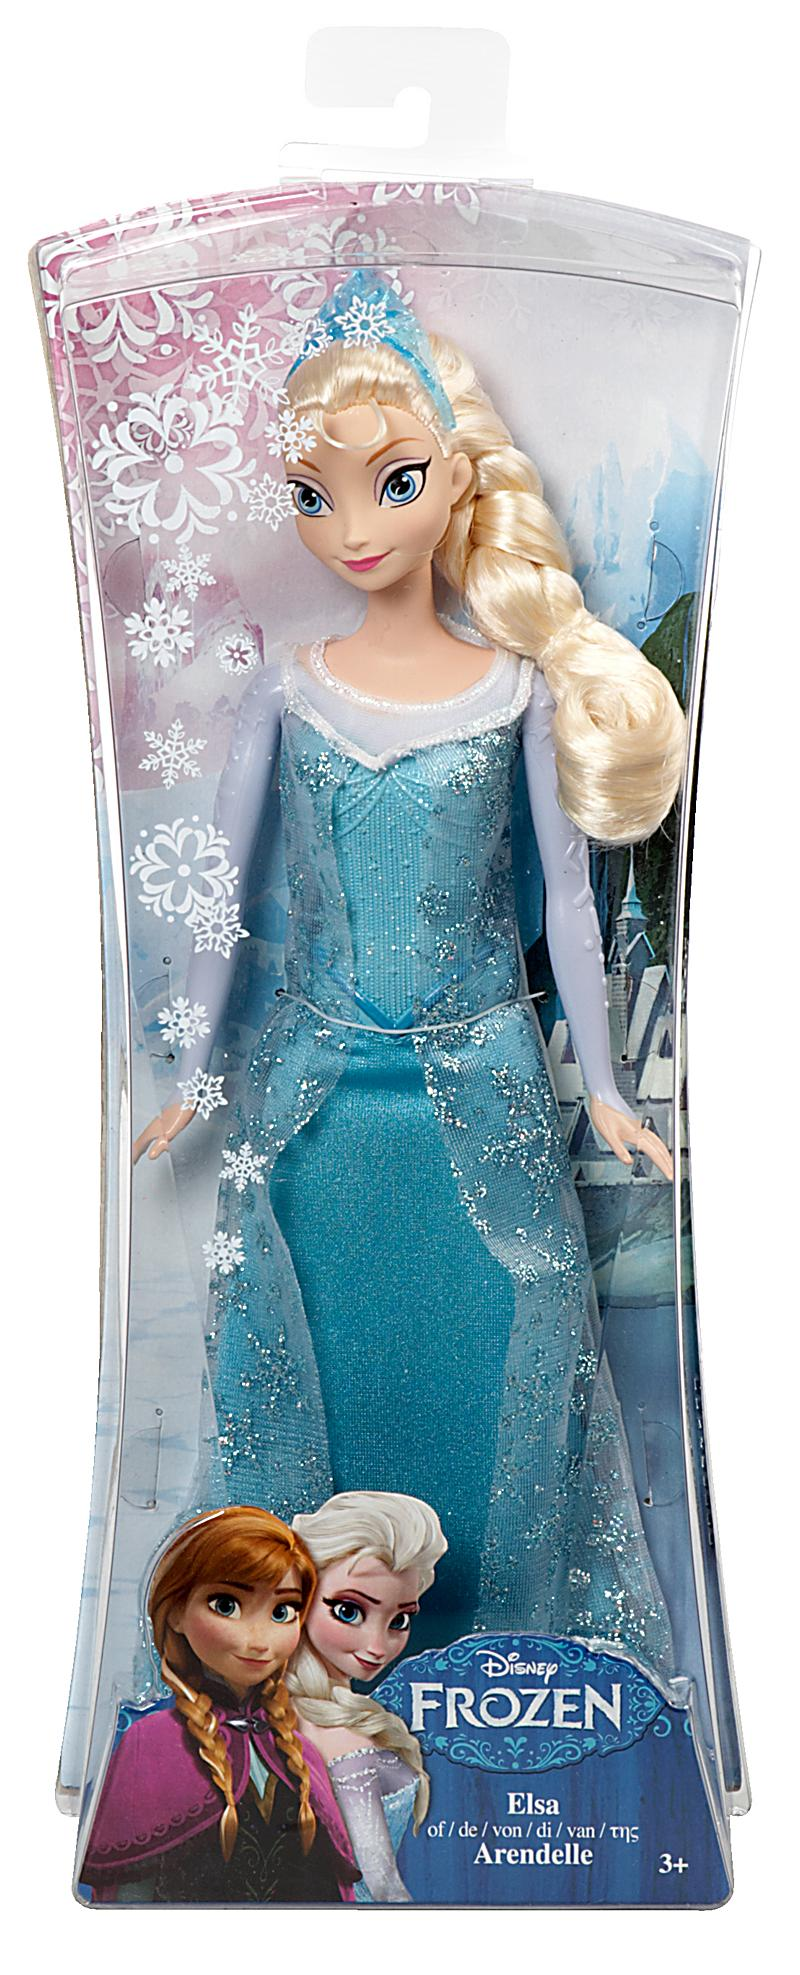 mattel disney princess die eisk nigin elsa. Black Bedroom Furniture Sets. Home Design Ideas